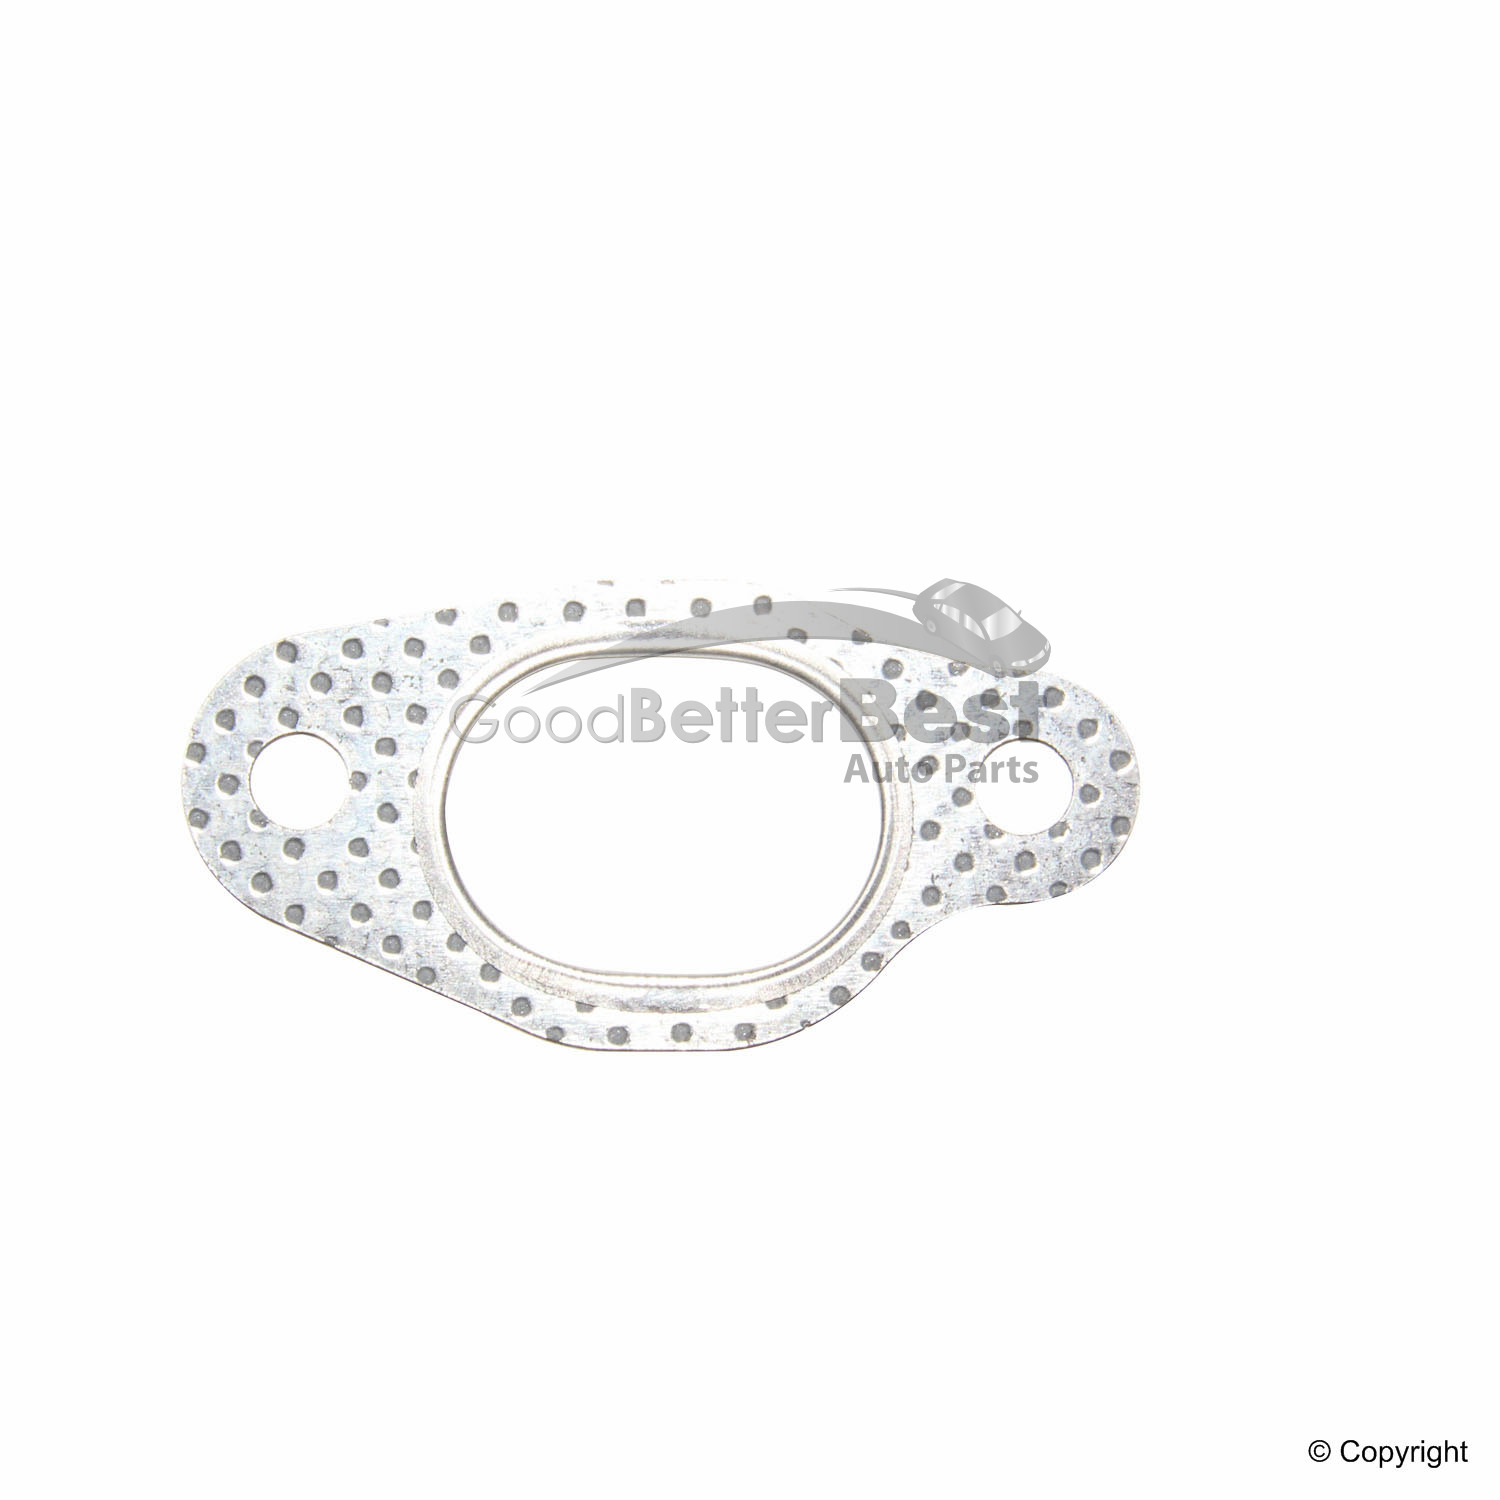 One New Elwis Exhaust Manifold Gasket For Audi